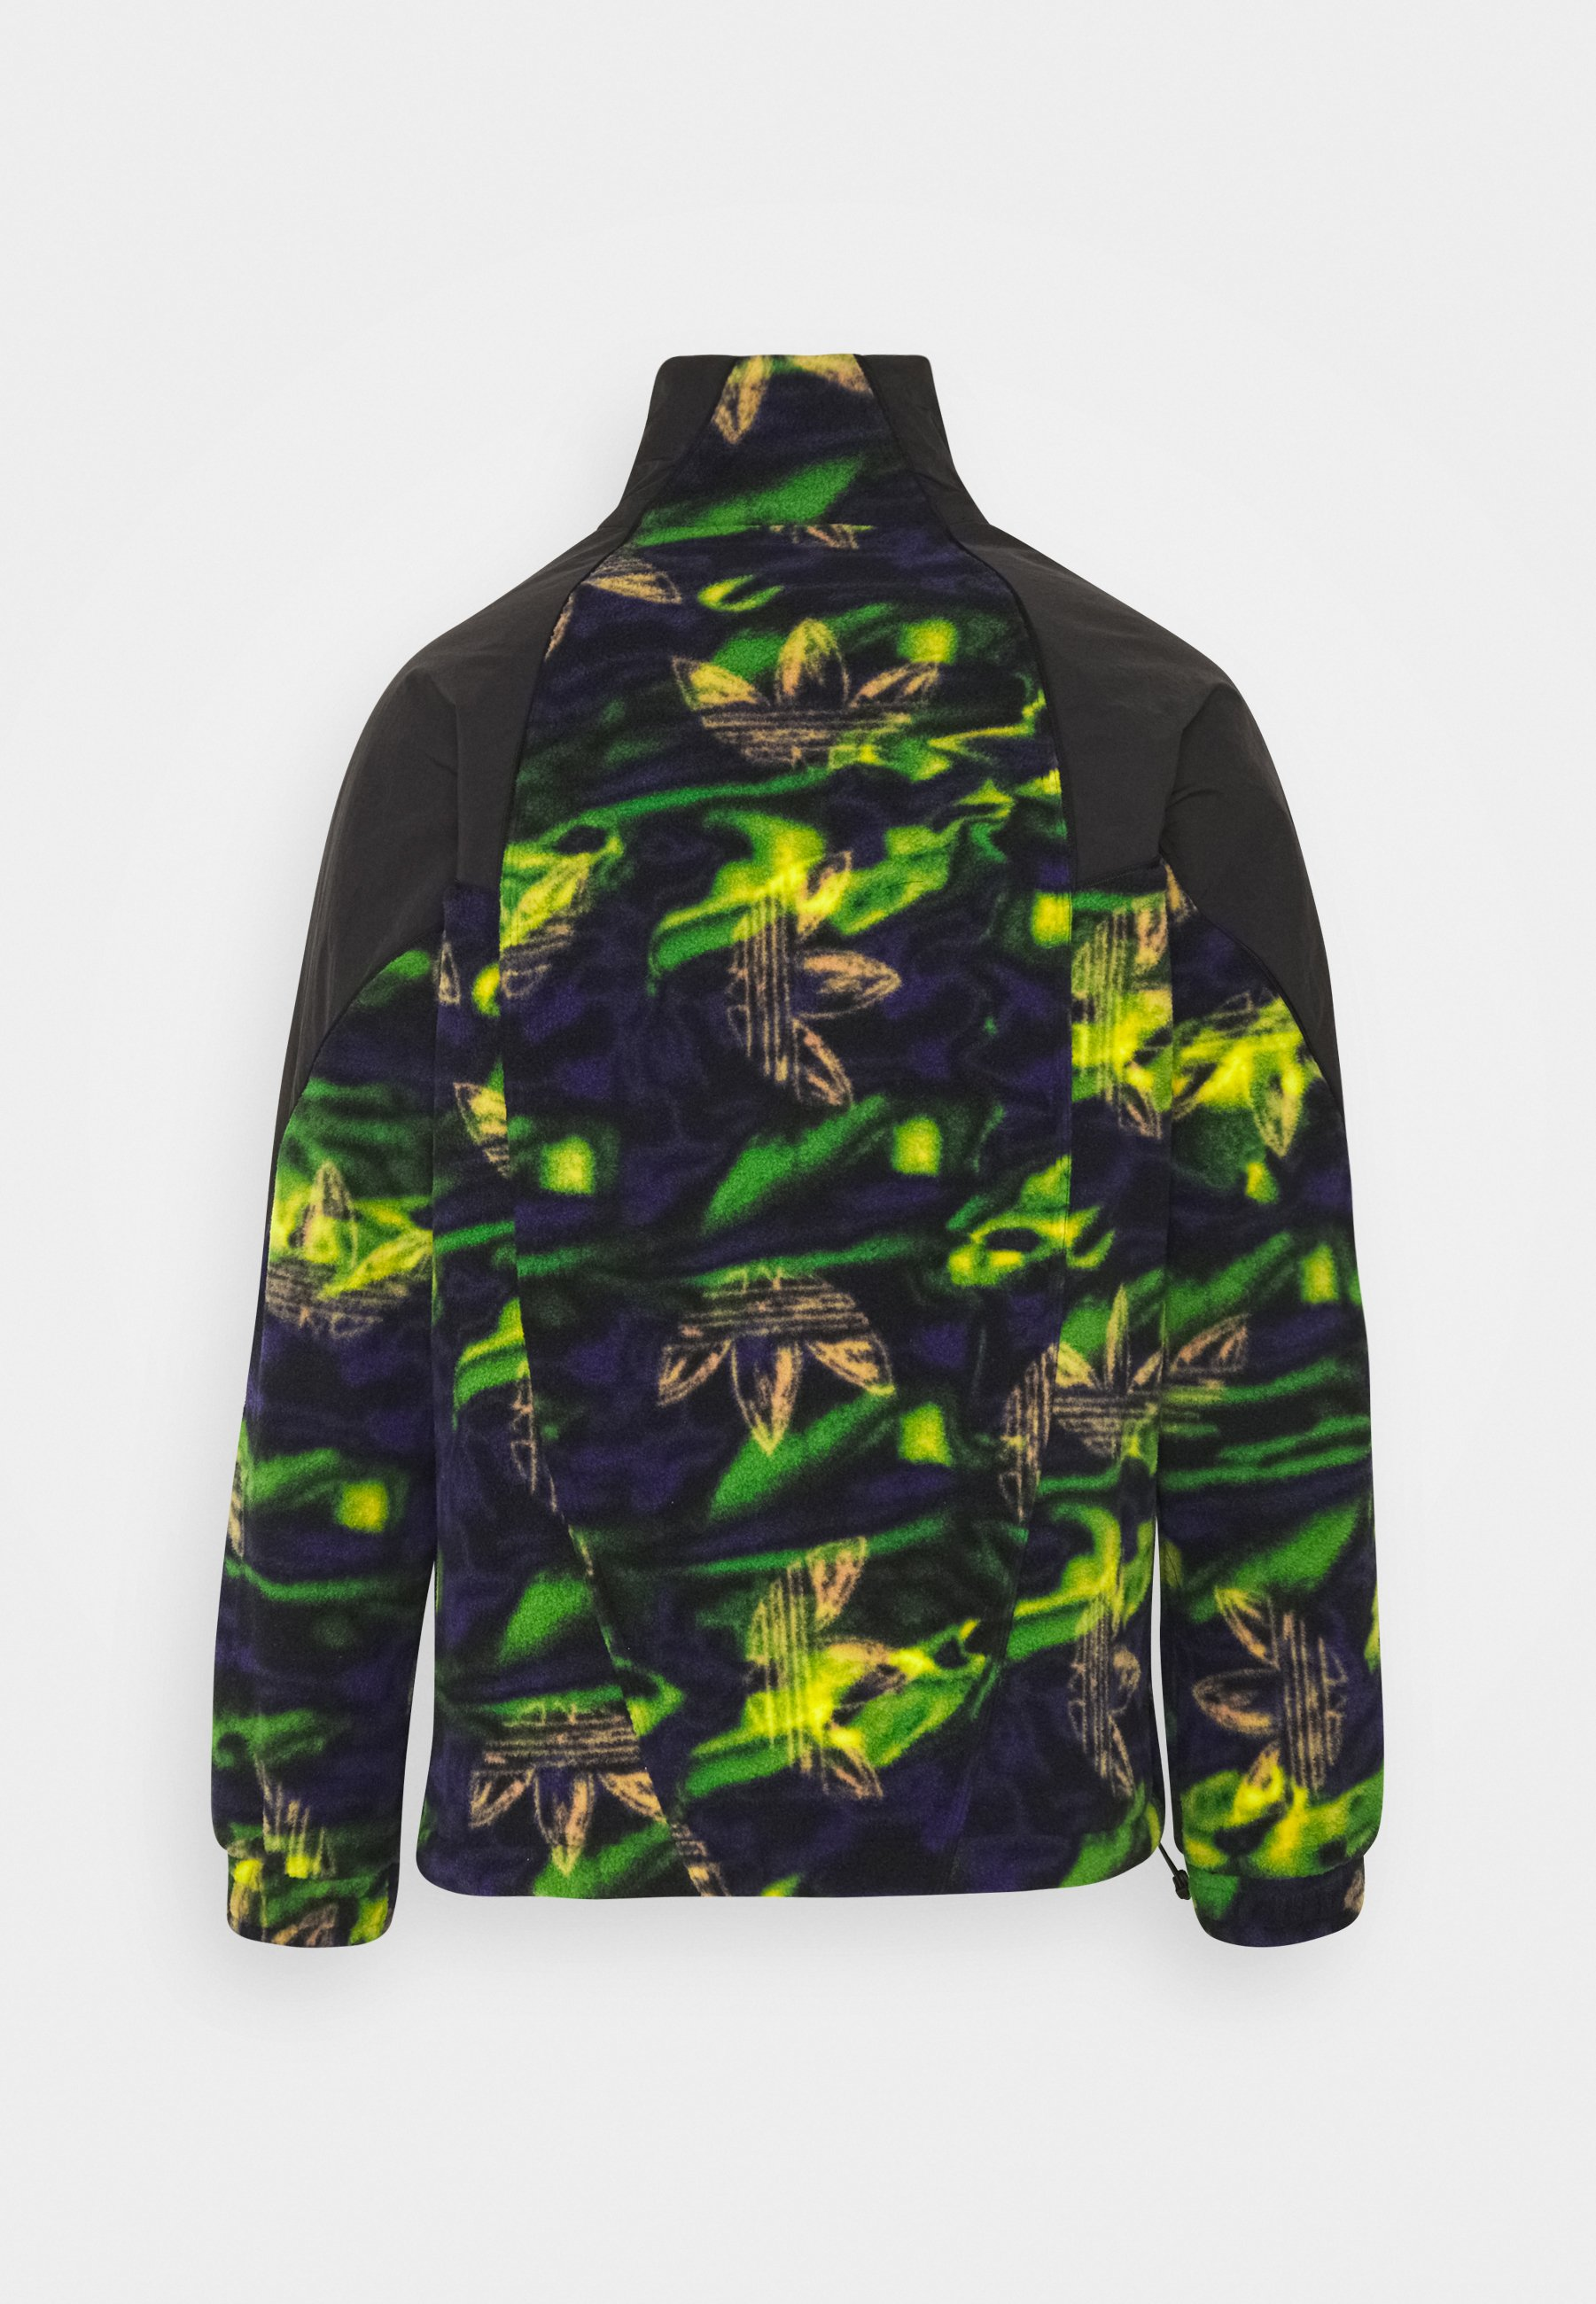 Adidas Originals Fleecejacke - Multicolor